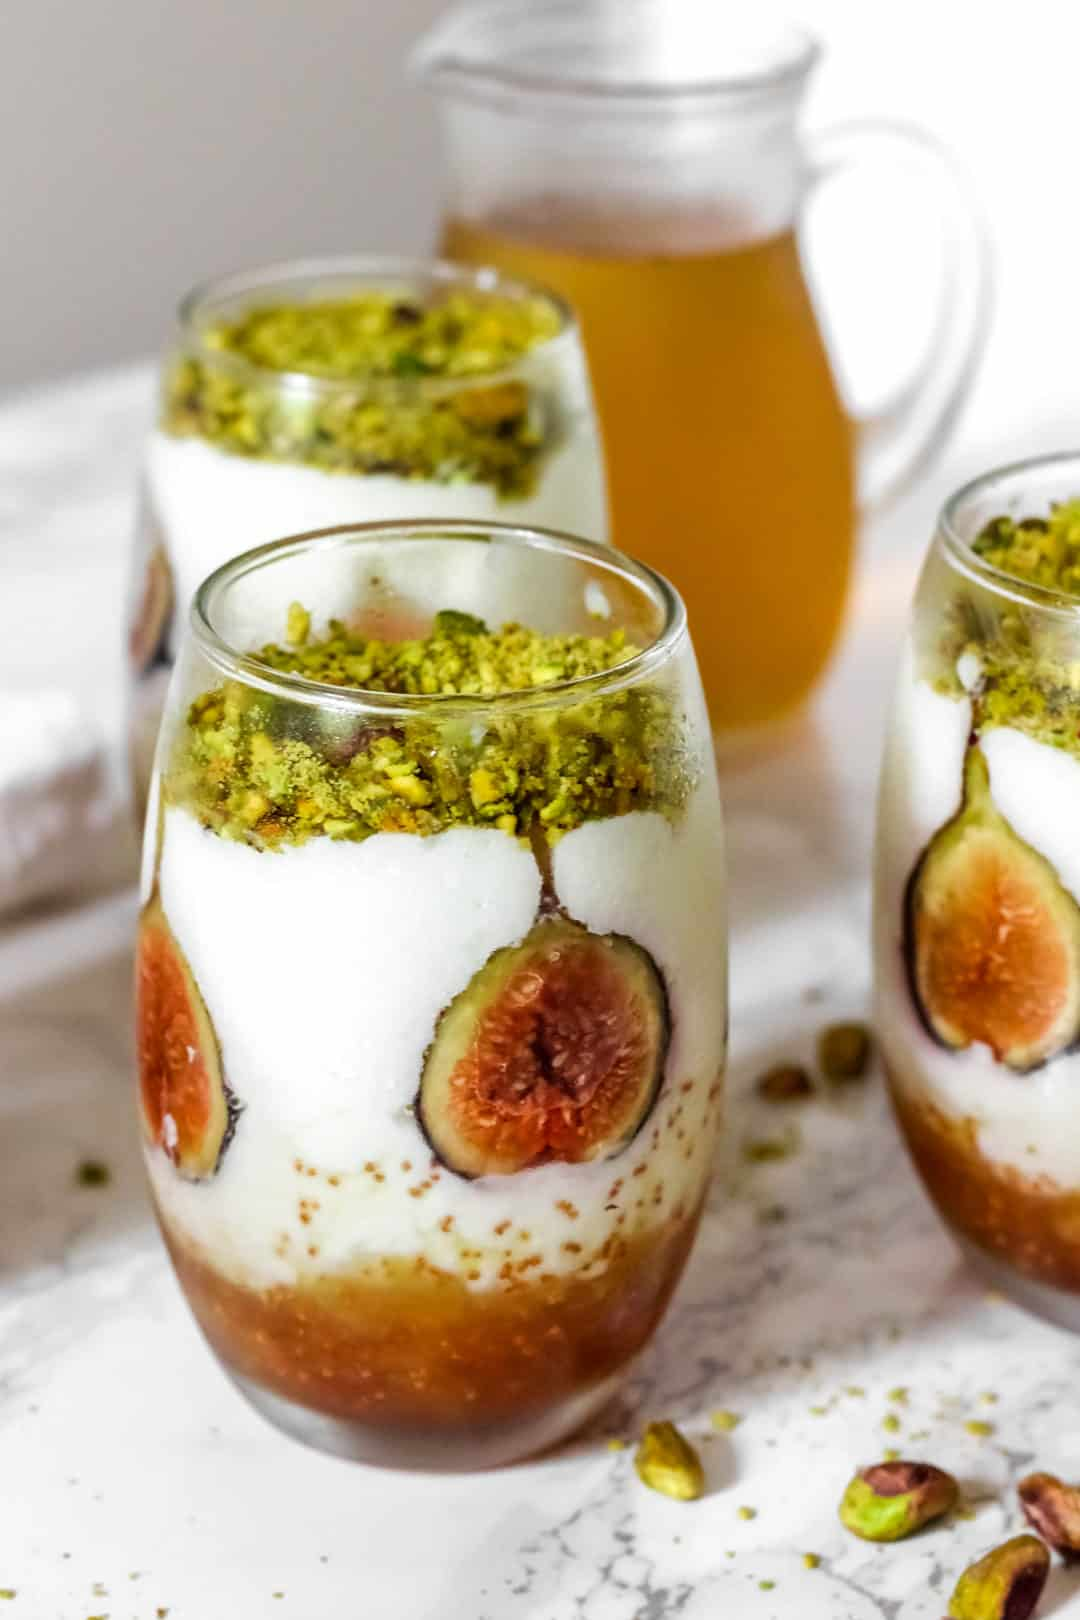 Lebanese Mahalepi with Figs (Milk Pudding with Orange Blossom Syrup)